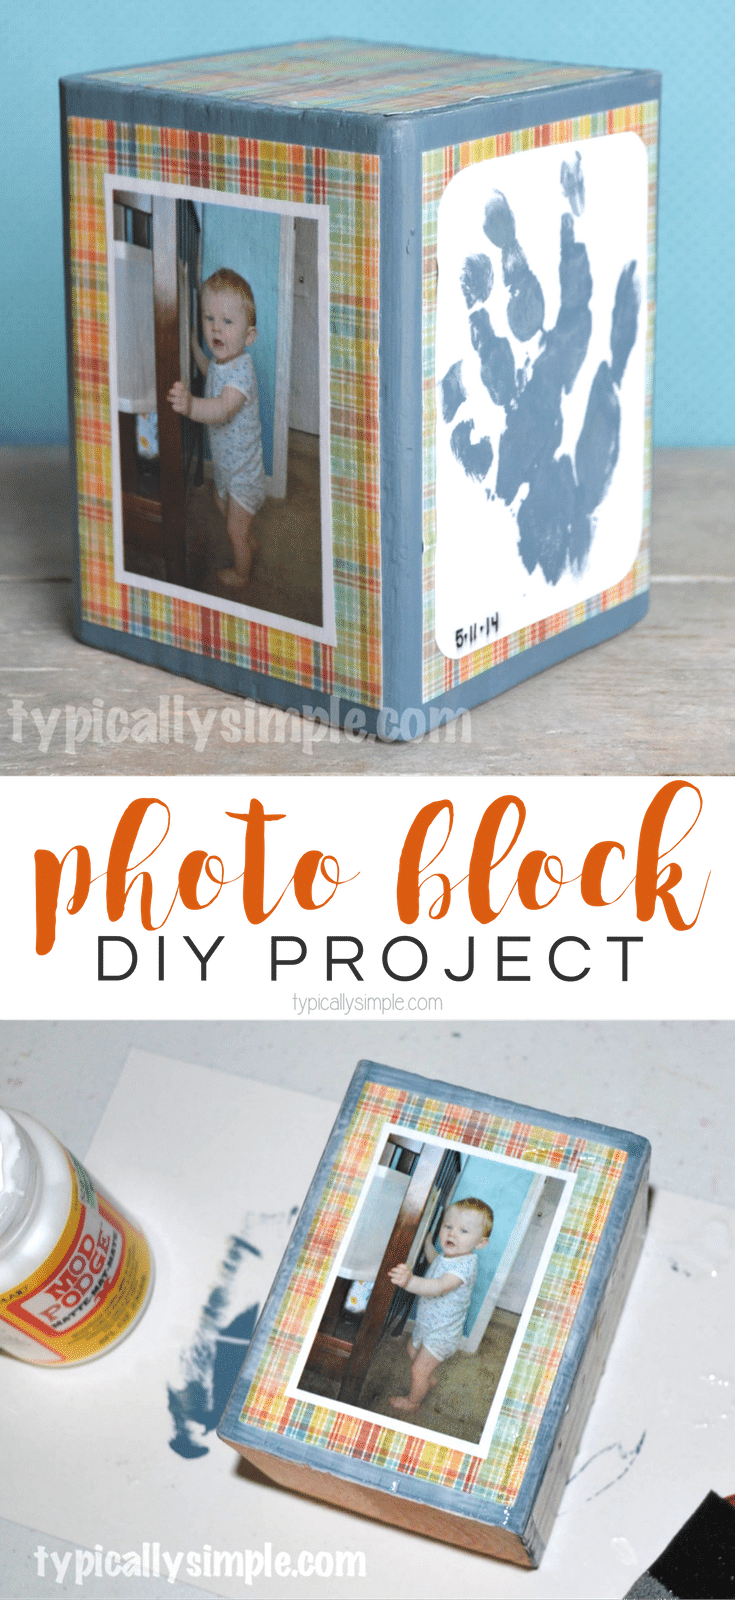 A homemade gift that is perfect for displaying favorite photos, handprints, or even little drawings made by the kids. This DIY Photo Block is a simple project to make as a Mother's Day or birthday gift!